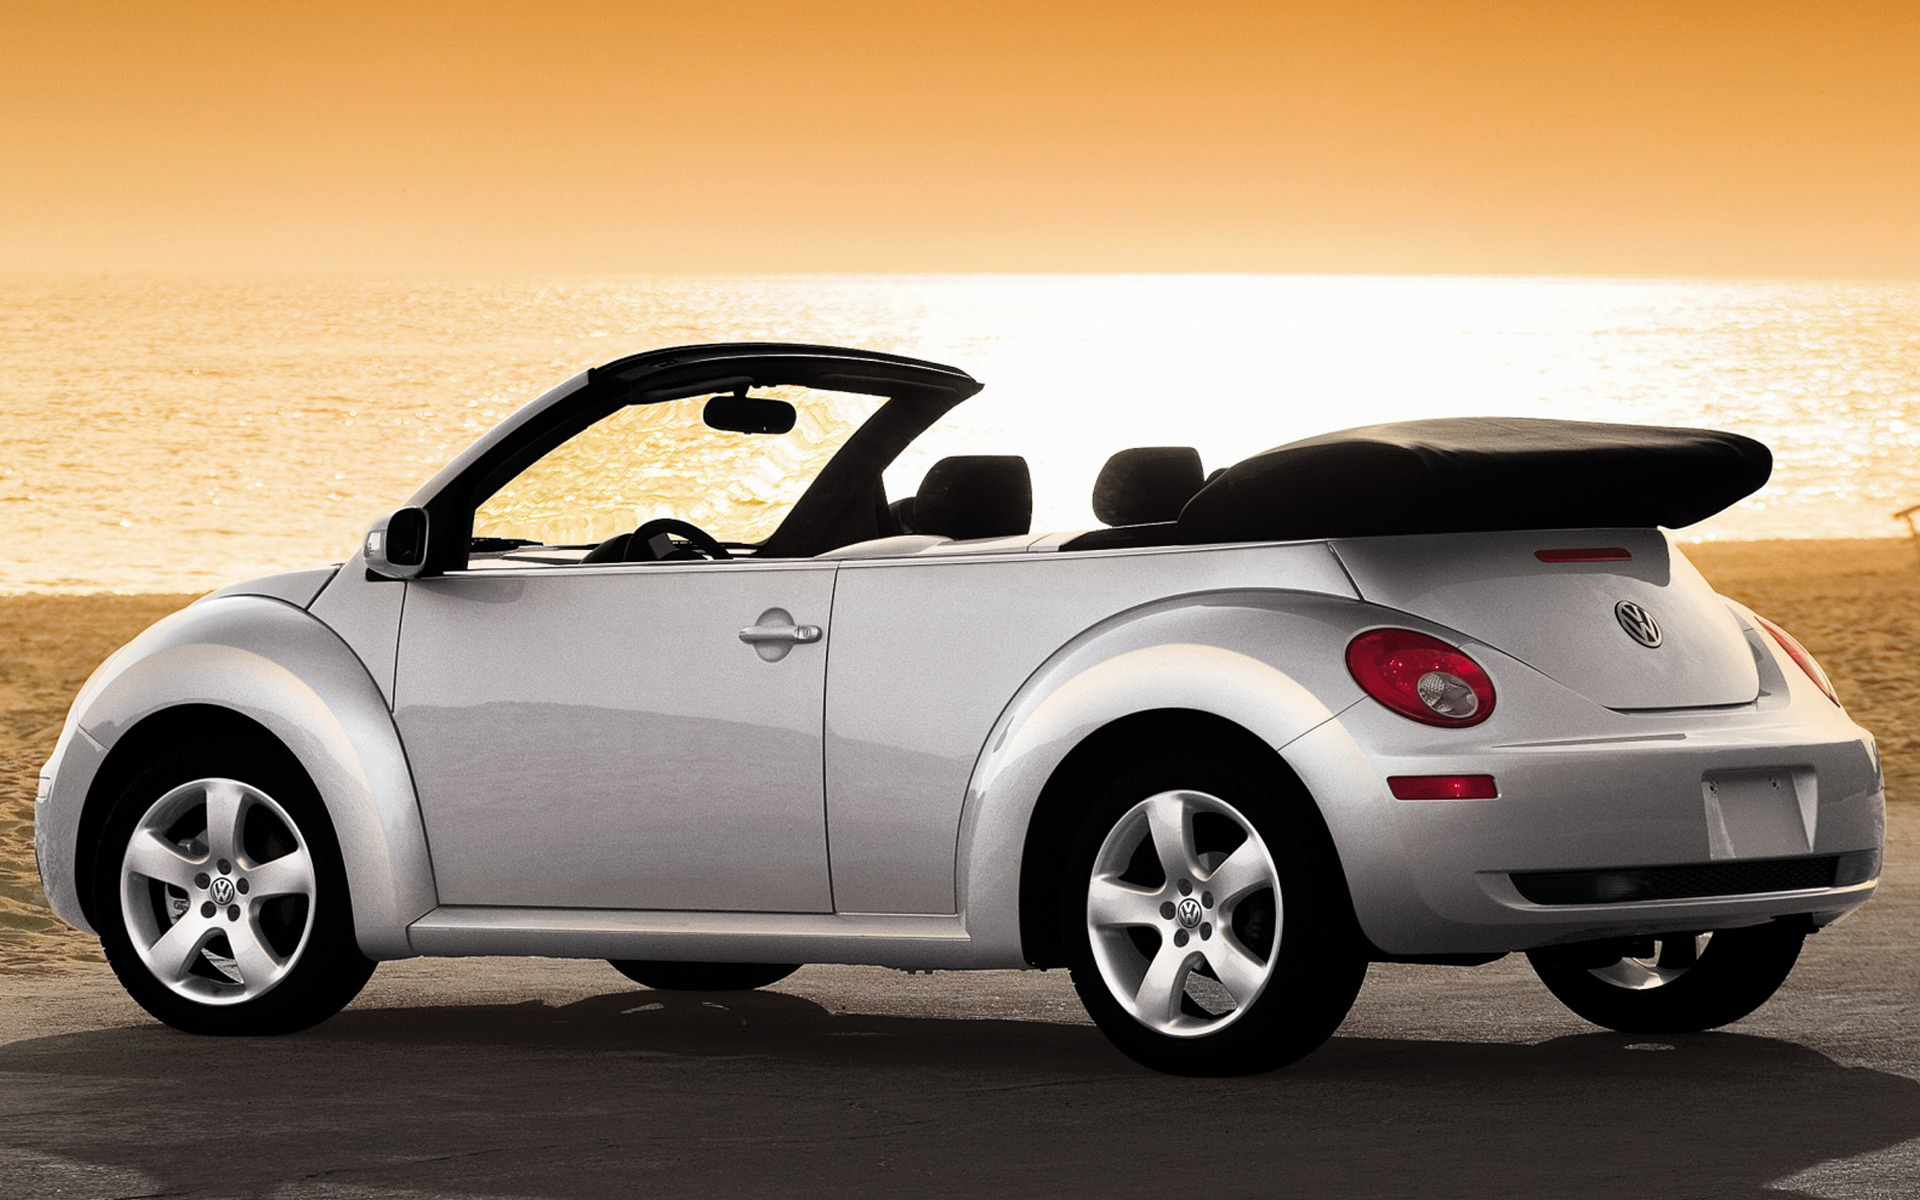 Volkswagen New Beetle Convertible (2006) US Wallpapers and HD Images - Car Pixel